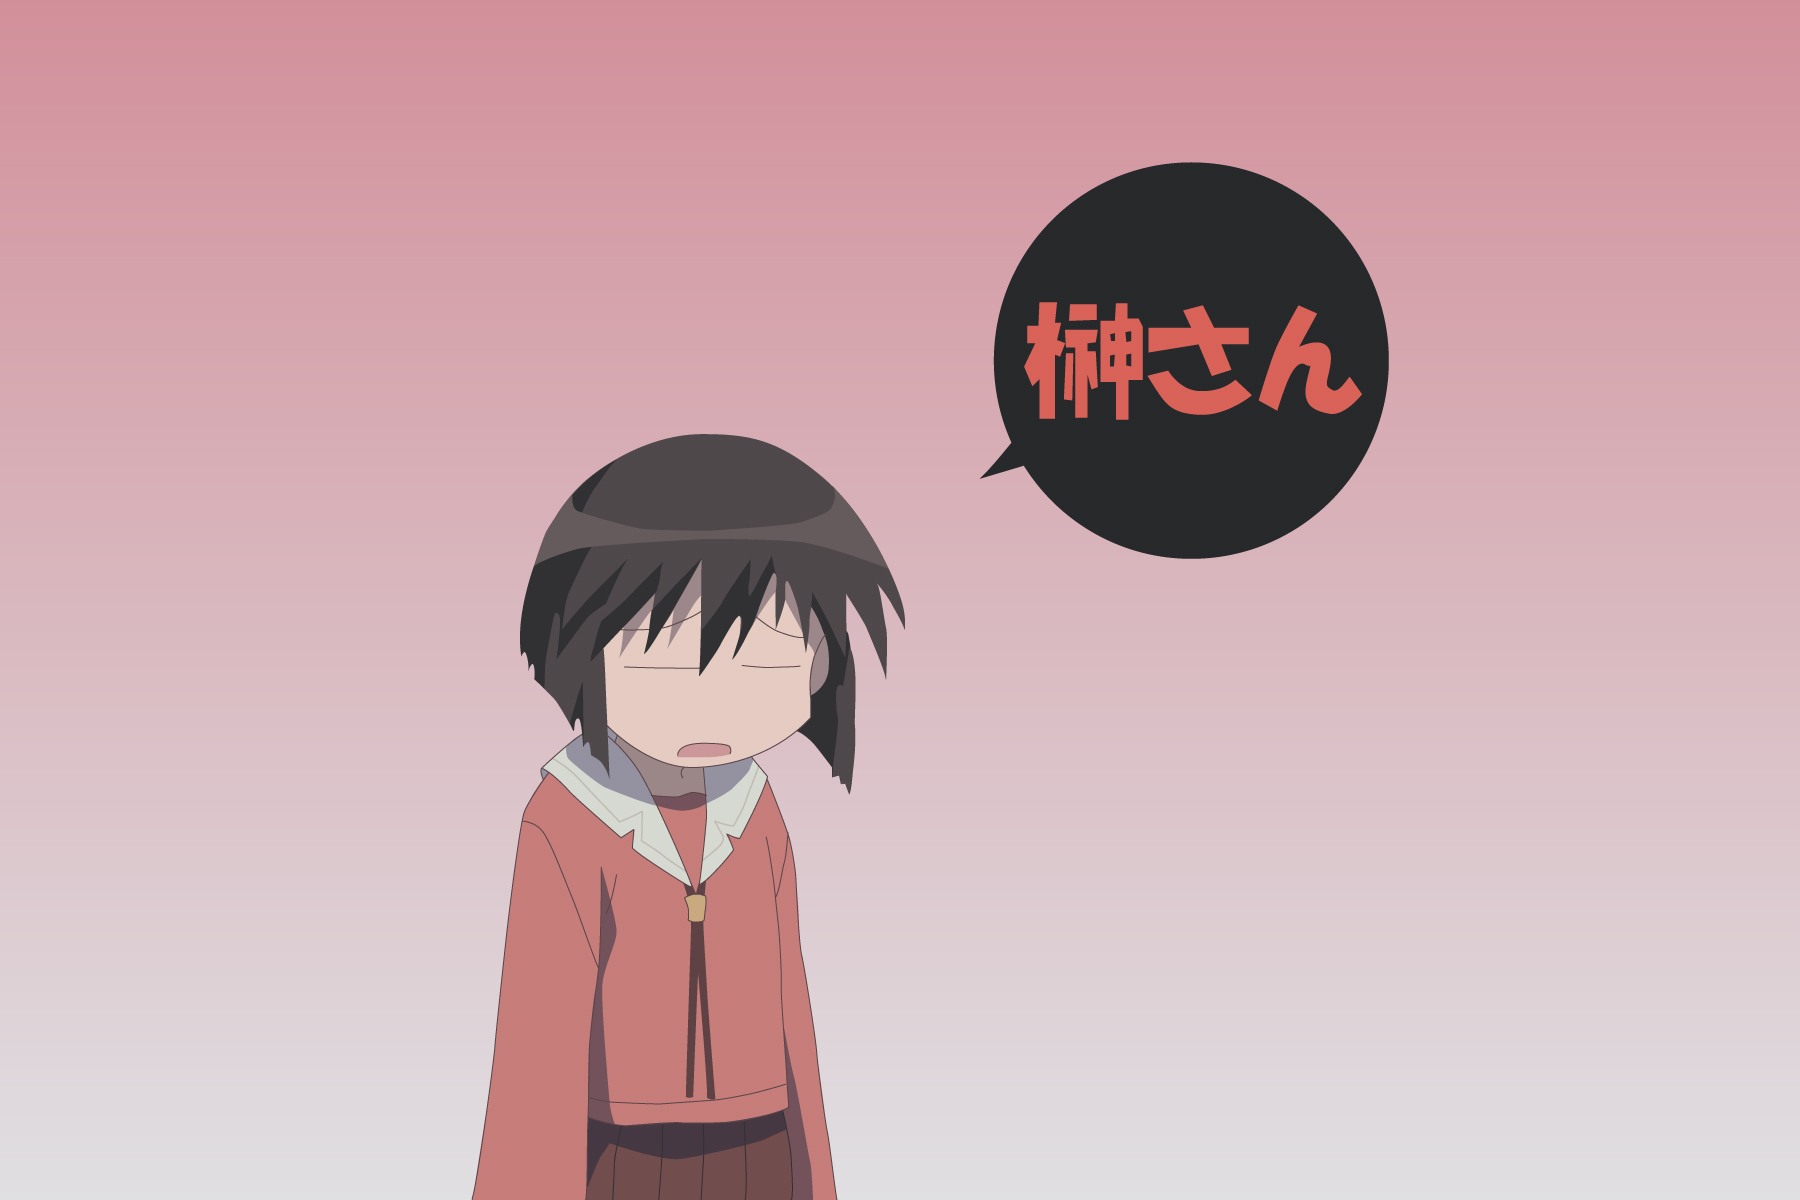 Miss Sakaki! (榊さん). This is a wallpaper fashioned after a frame from the We're Second Year Students episode from the Azumanga Daioh anime. Kaorin agonizes over not being Sakaki's classmate for her second year homeroom class. Kaorin's pretty obsessed that way in the anime.